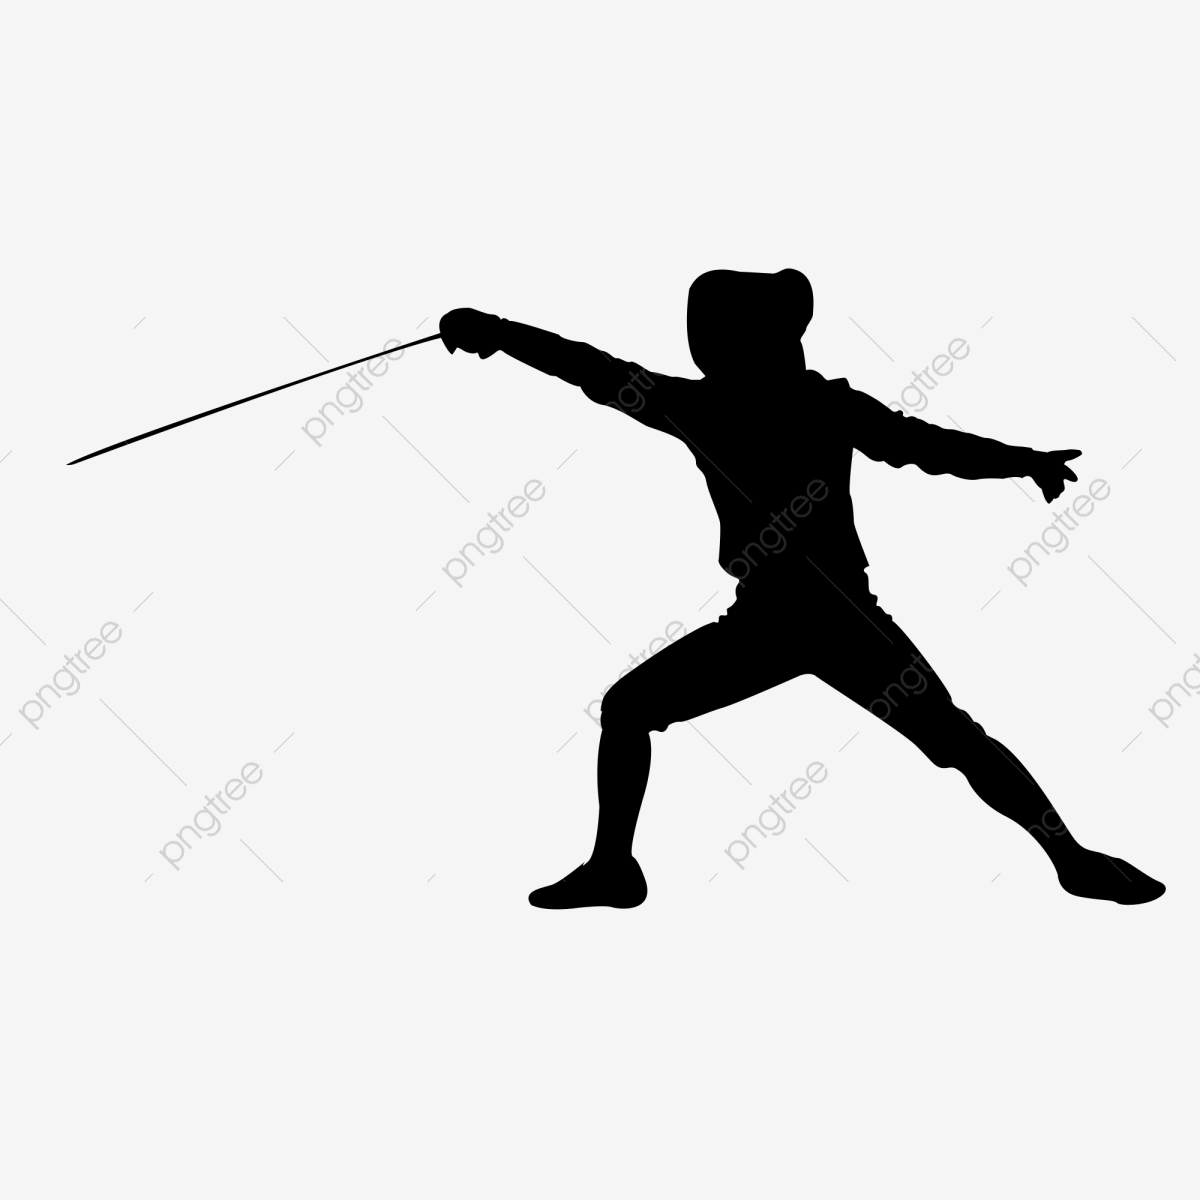 Fencing clipart person. Sports character silhouette physical